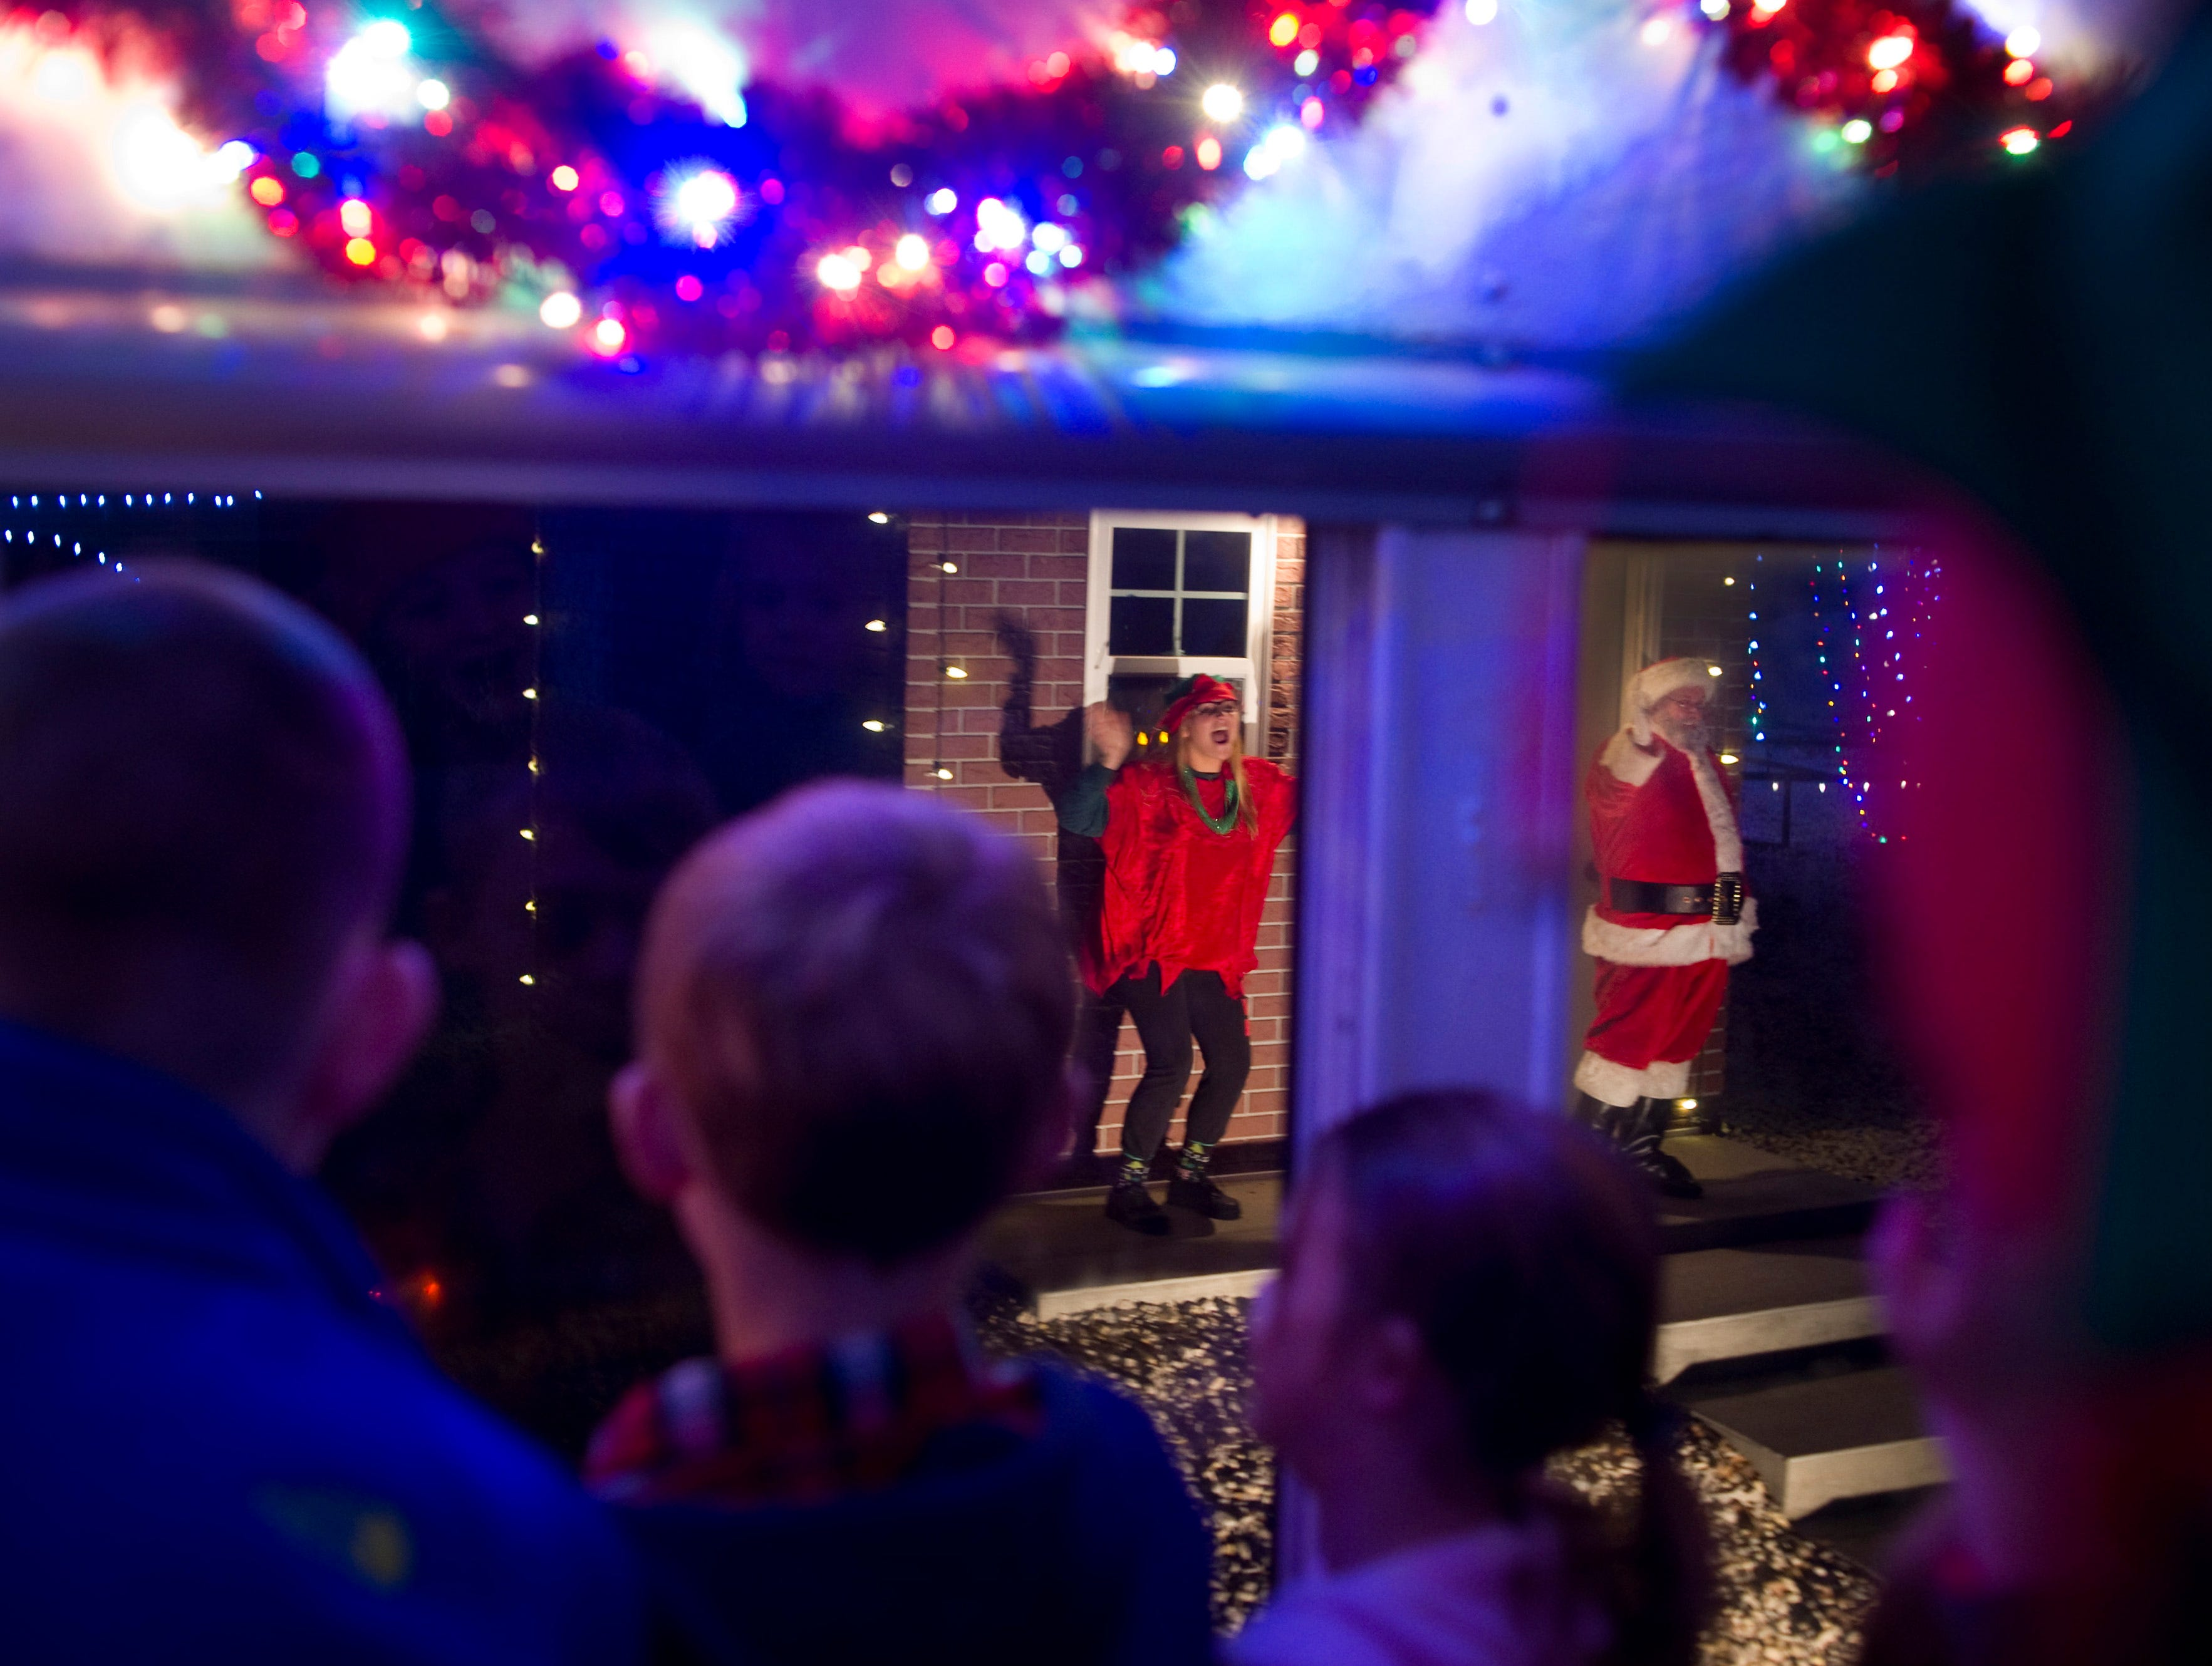 """I see him! Santa! Santa! Hey, Santa!"" were some of the cries as The Polar Express arrived at the North Pole to pick up everyone's favorite gift-giving elf."